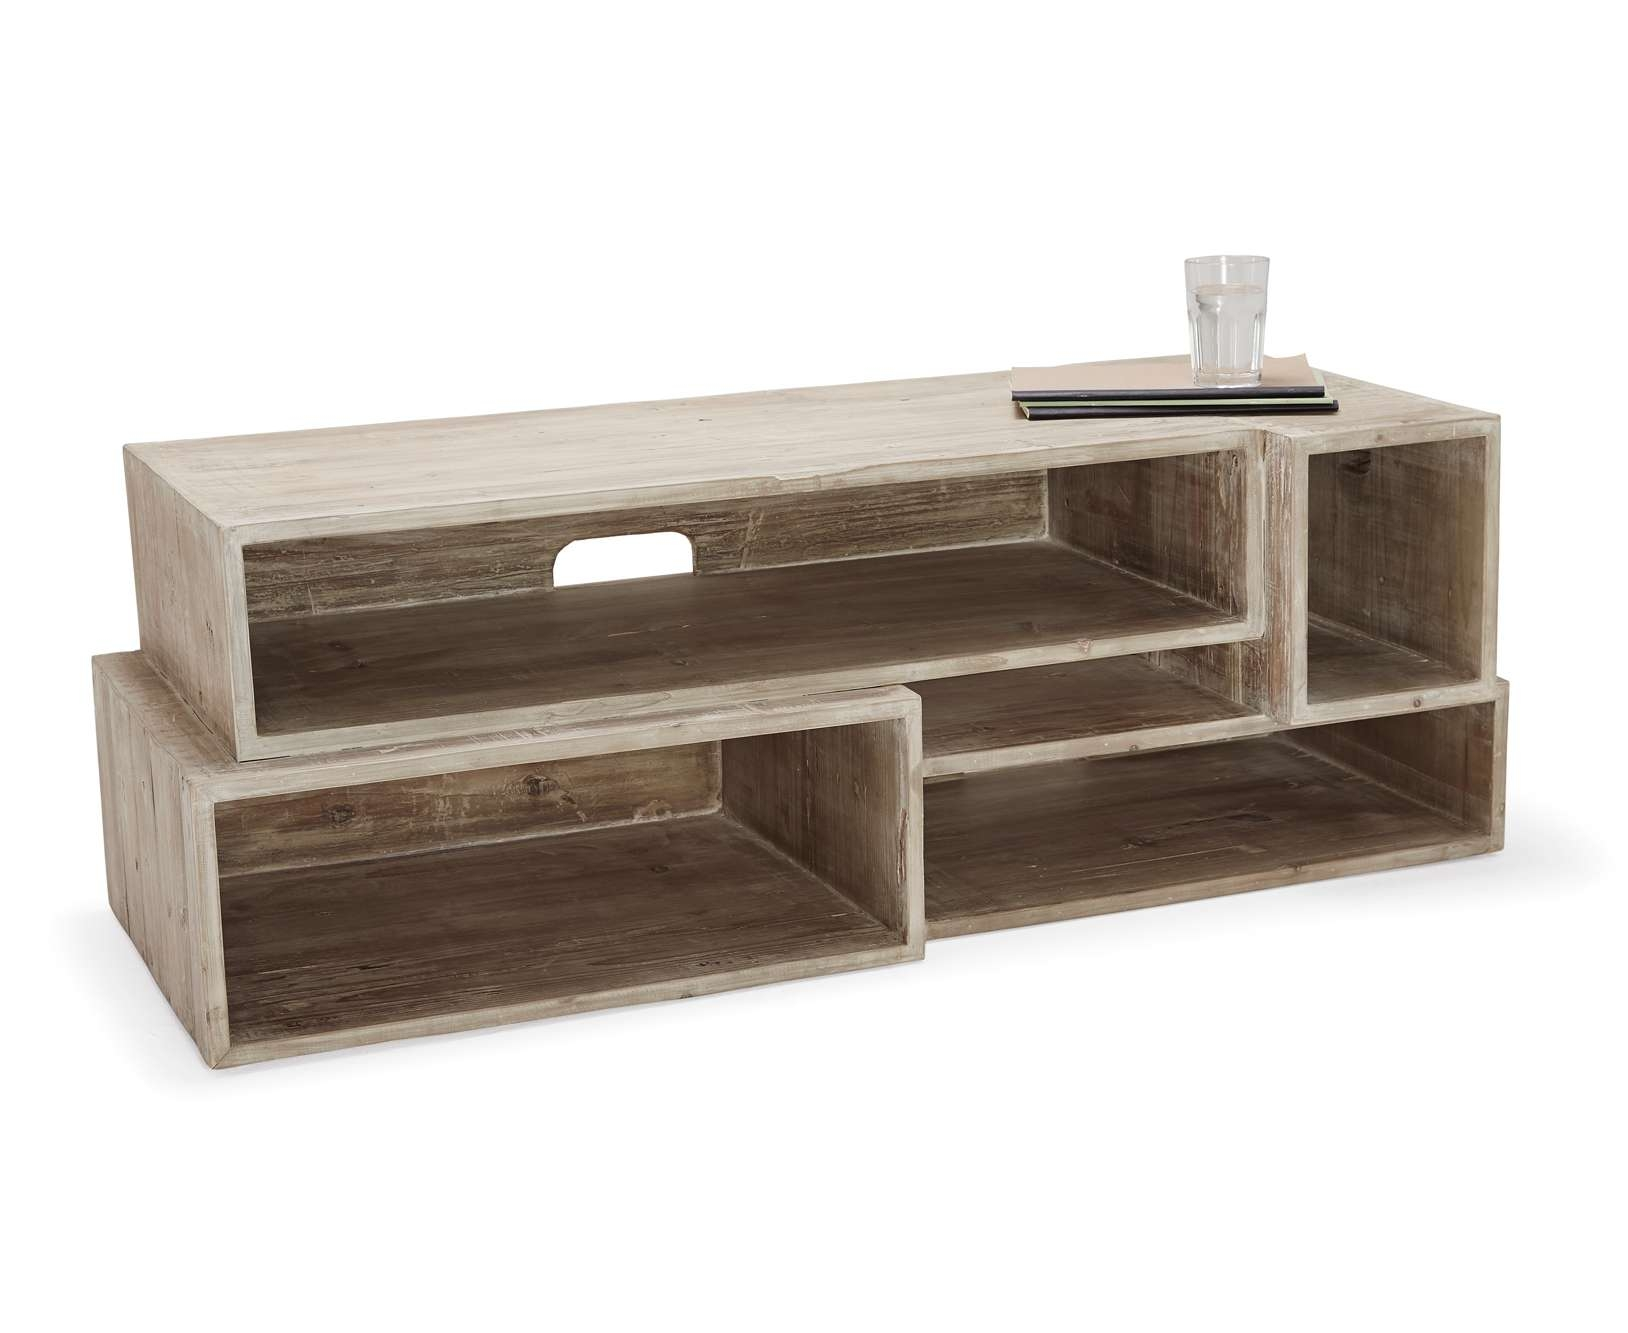 Tv Stands | Gorgeous Wooden Tv Stands | Loaf In Telly Tv Stands (View 11 of 15)